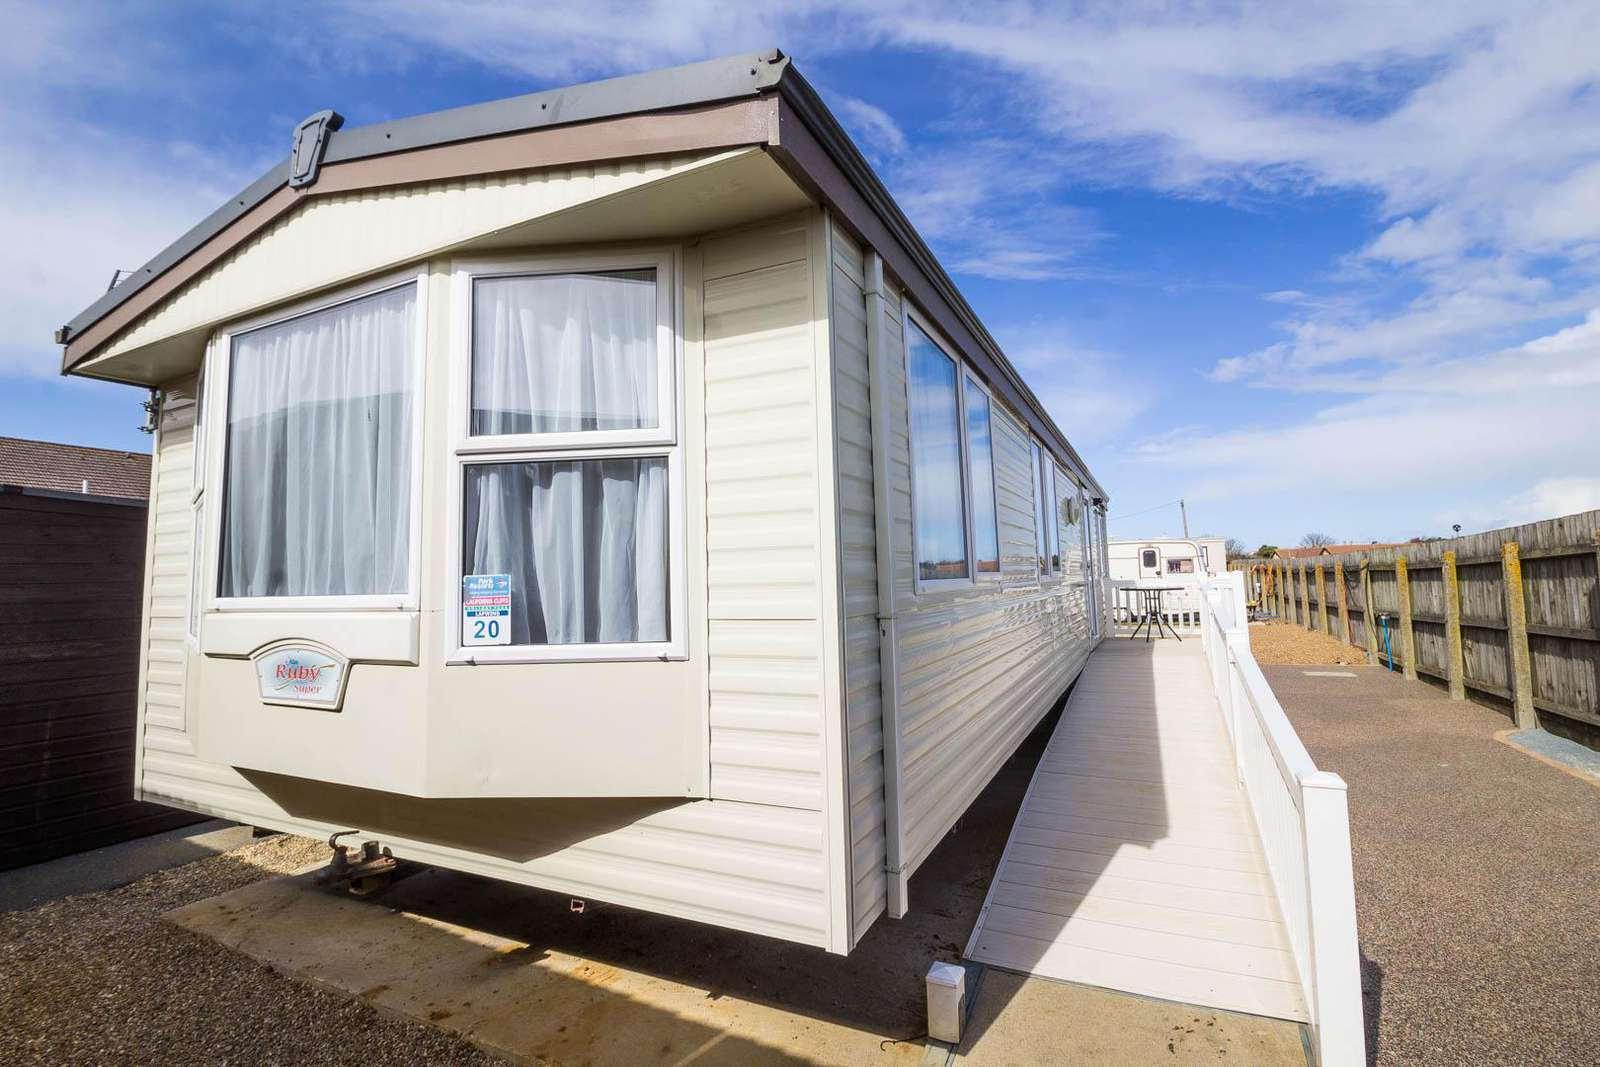 13016L – Lee's, 2 bed, 6 berth caravan. Fully wheelchair accessible. Ruby rated. - property